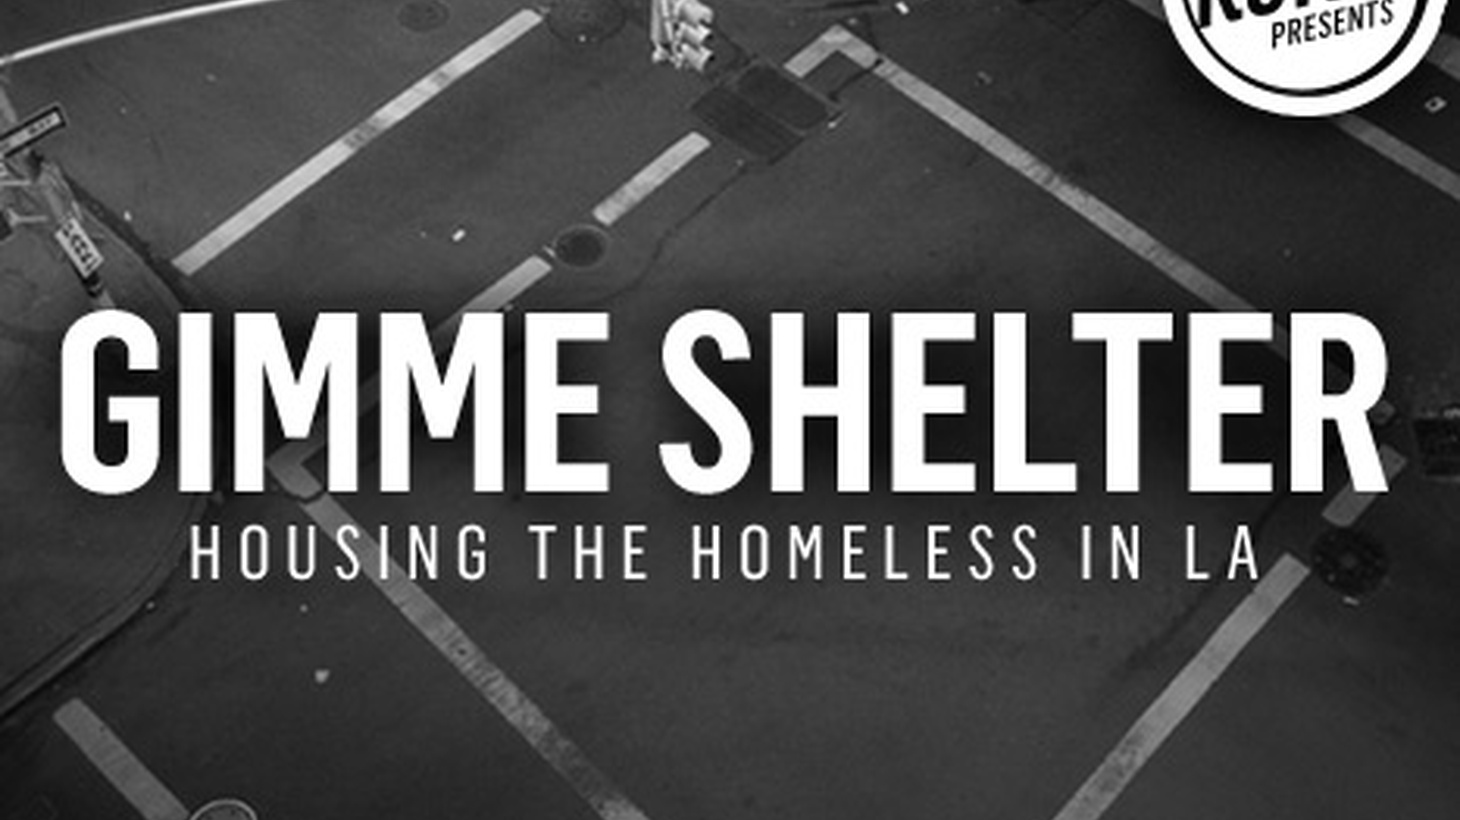 A special live broadcast of Press Play examines the city's unprecedented homeless crisis from how we got here to what the solutions might be.